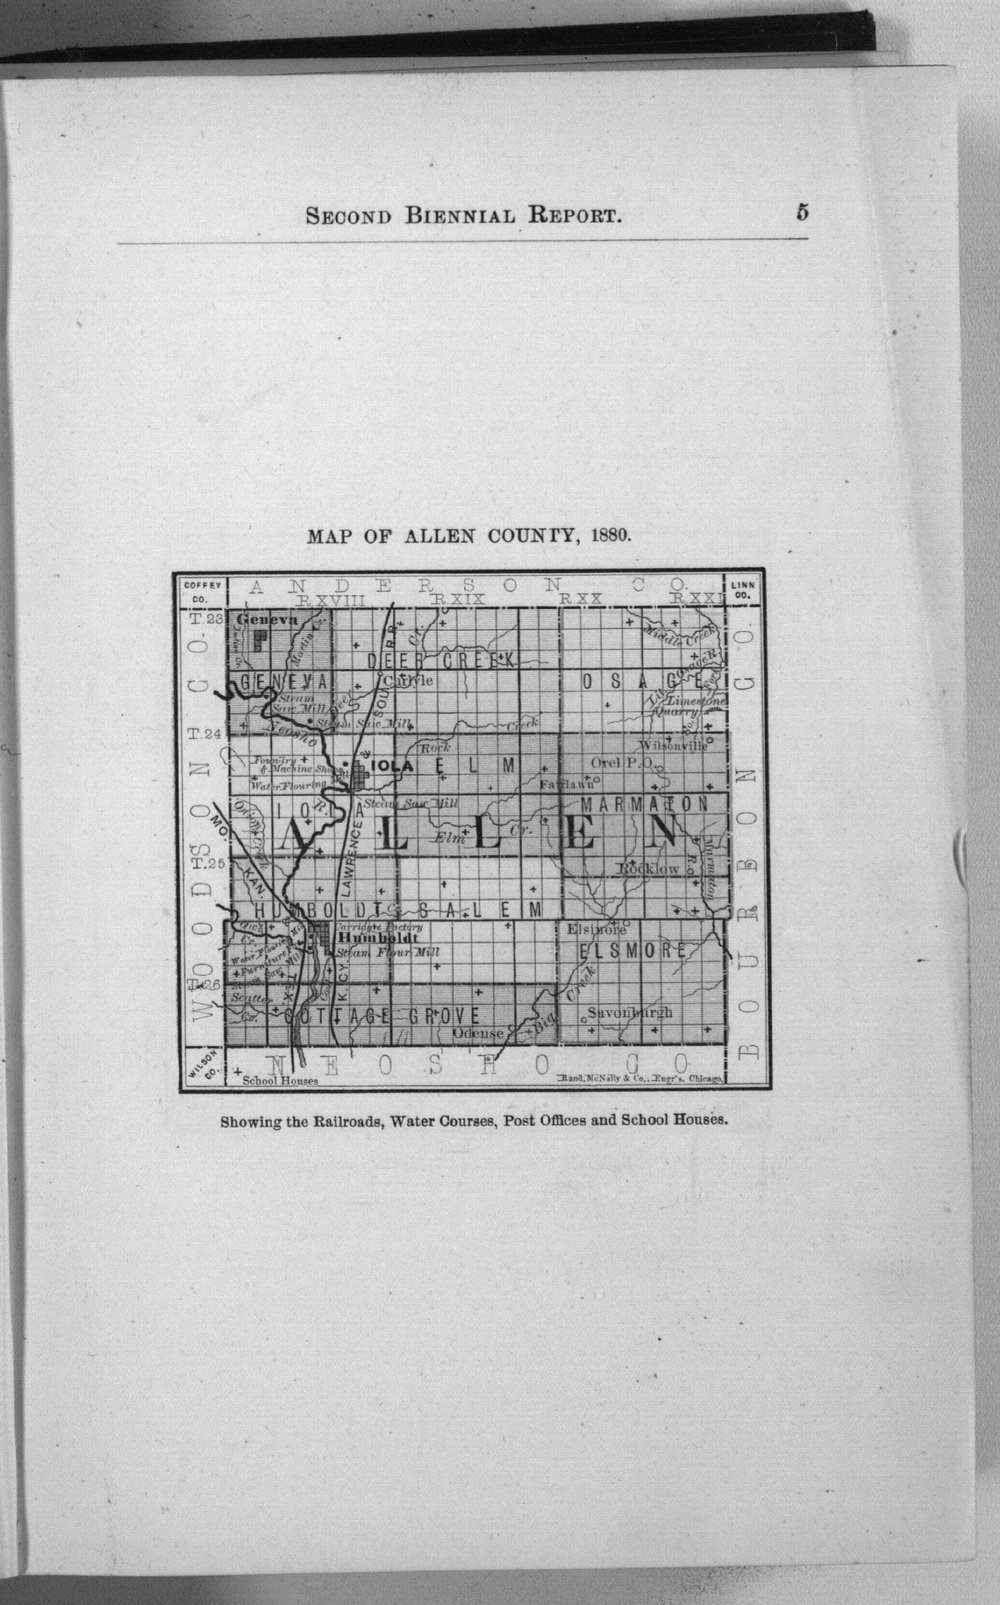 Second biennial report of the Kansas State Board of Agriculture, 1879-80 - 5